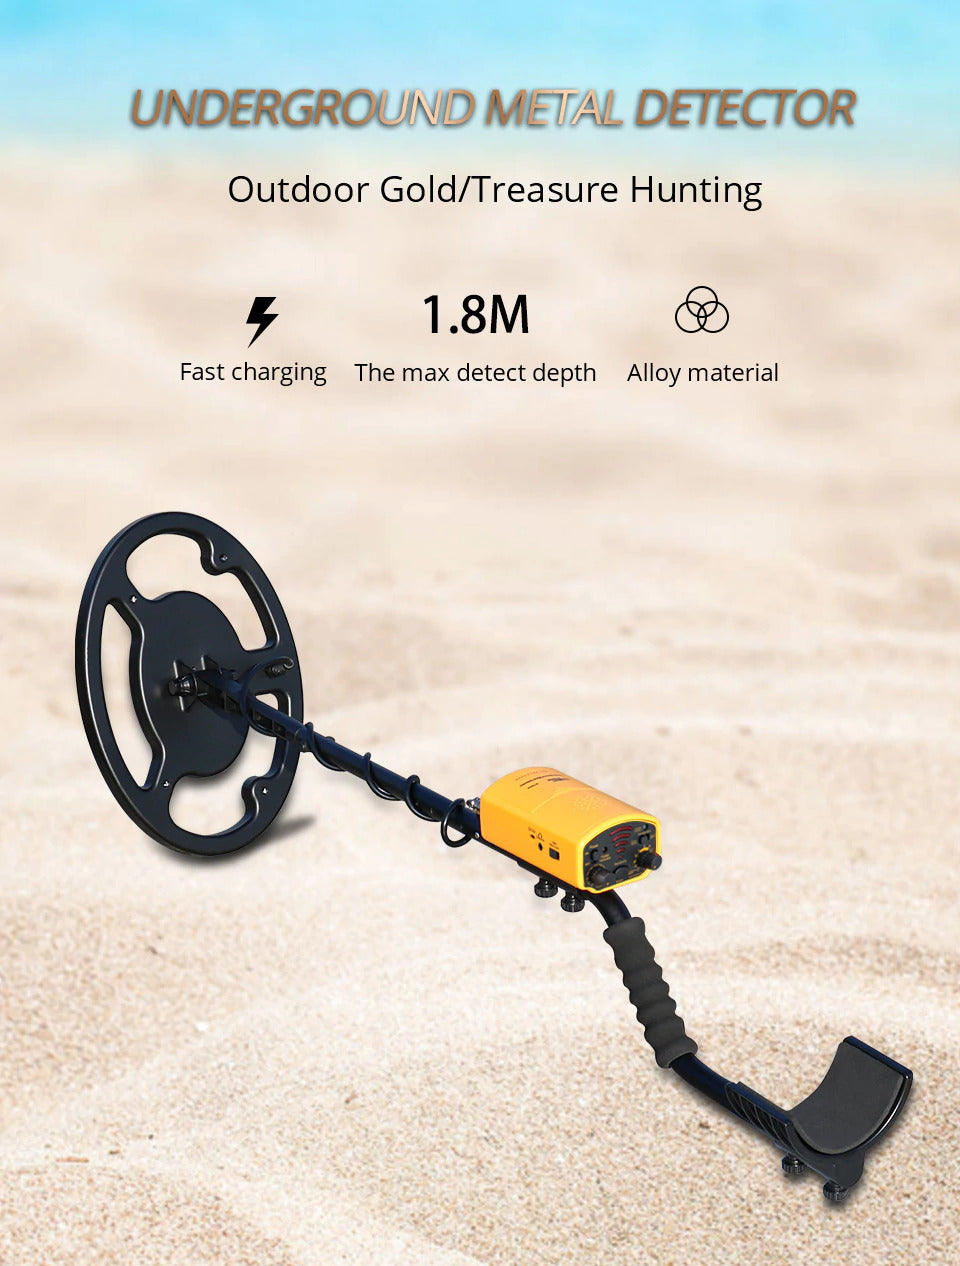 Underground Metal Detector, Outdoor Gold/Treasure Hunting, Fast charging/1.8M the max detect depth/Alloy material